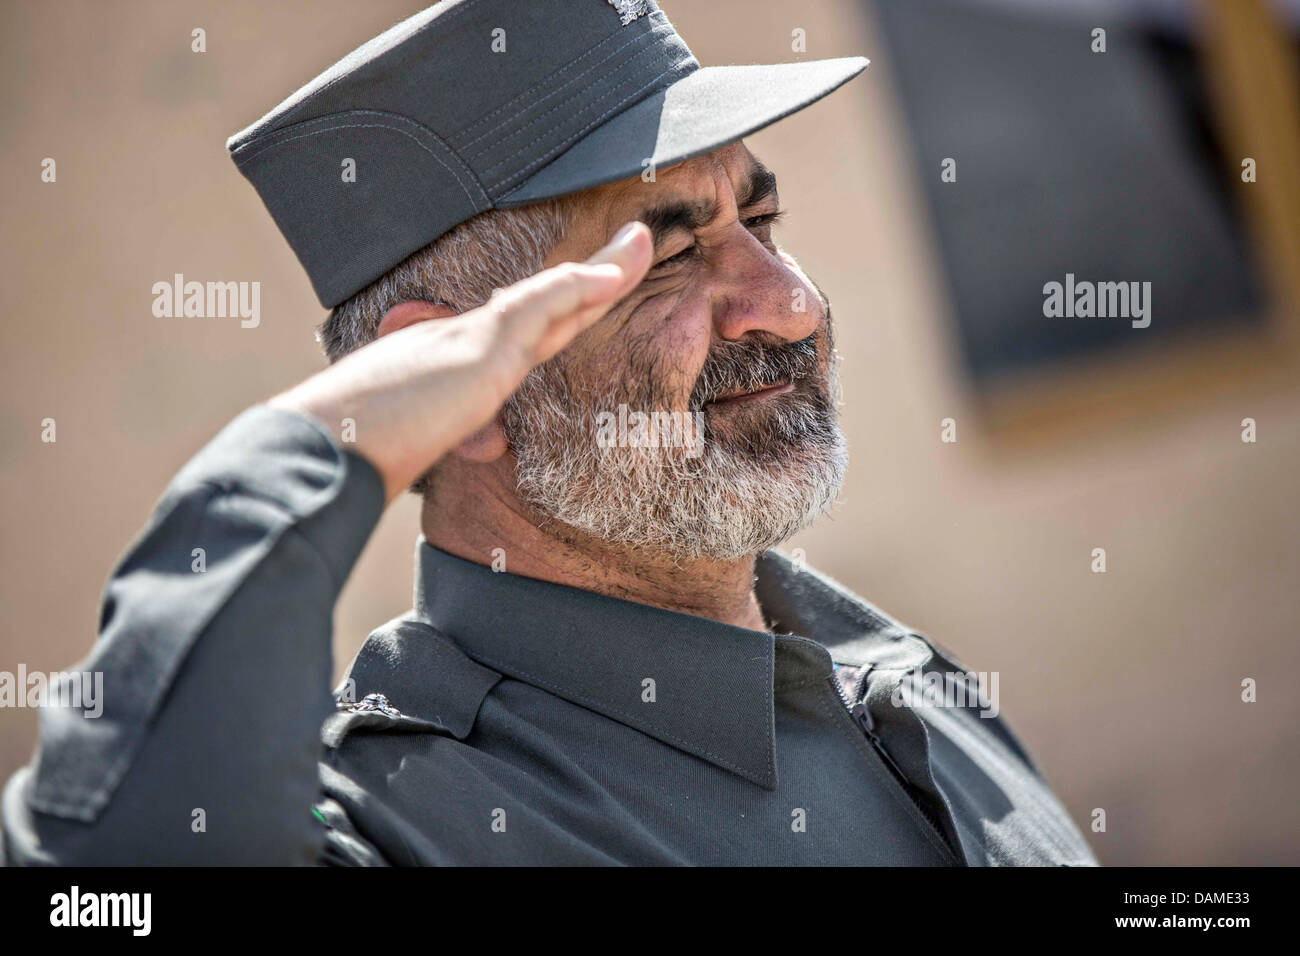 The Provincial Chief of Police Gen. Abdul Hakim salutes during a police graduation ceremony July 14, 2013 in Farah - Stock Image